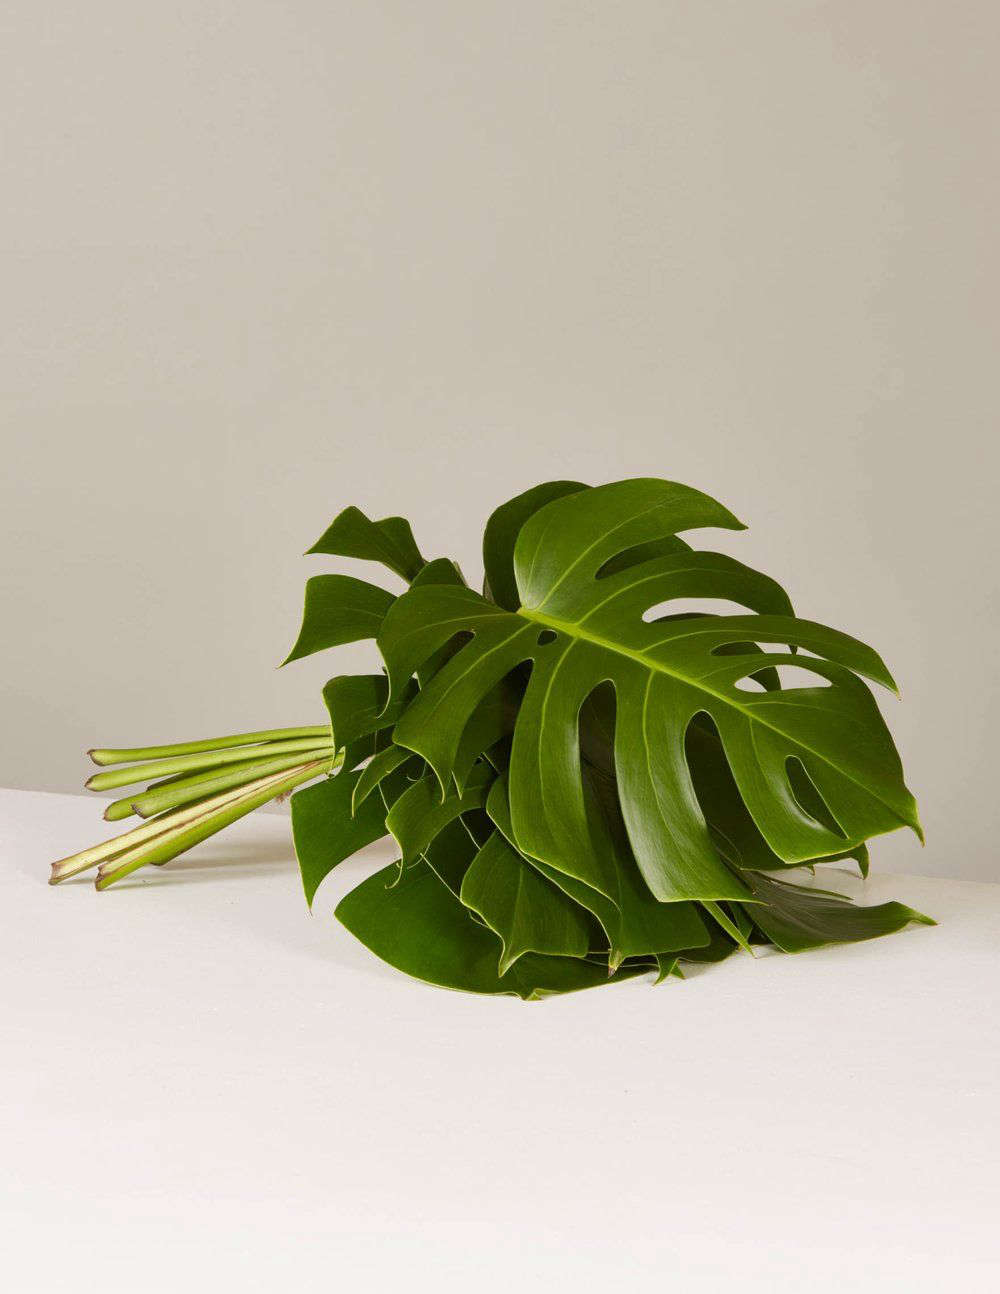 Monstera Deliciosa Growing And Design Tips For A Tropical Houseplant